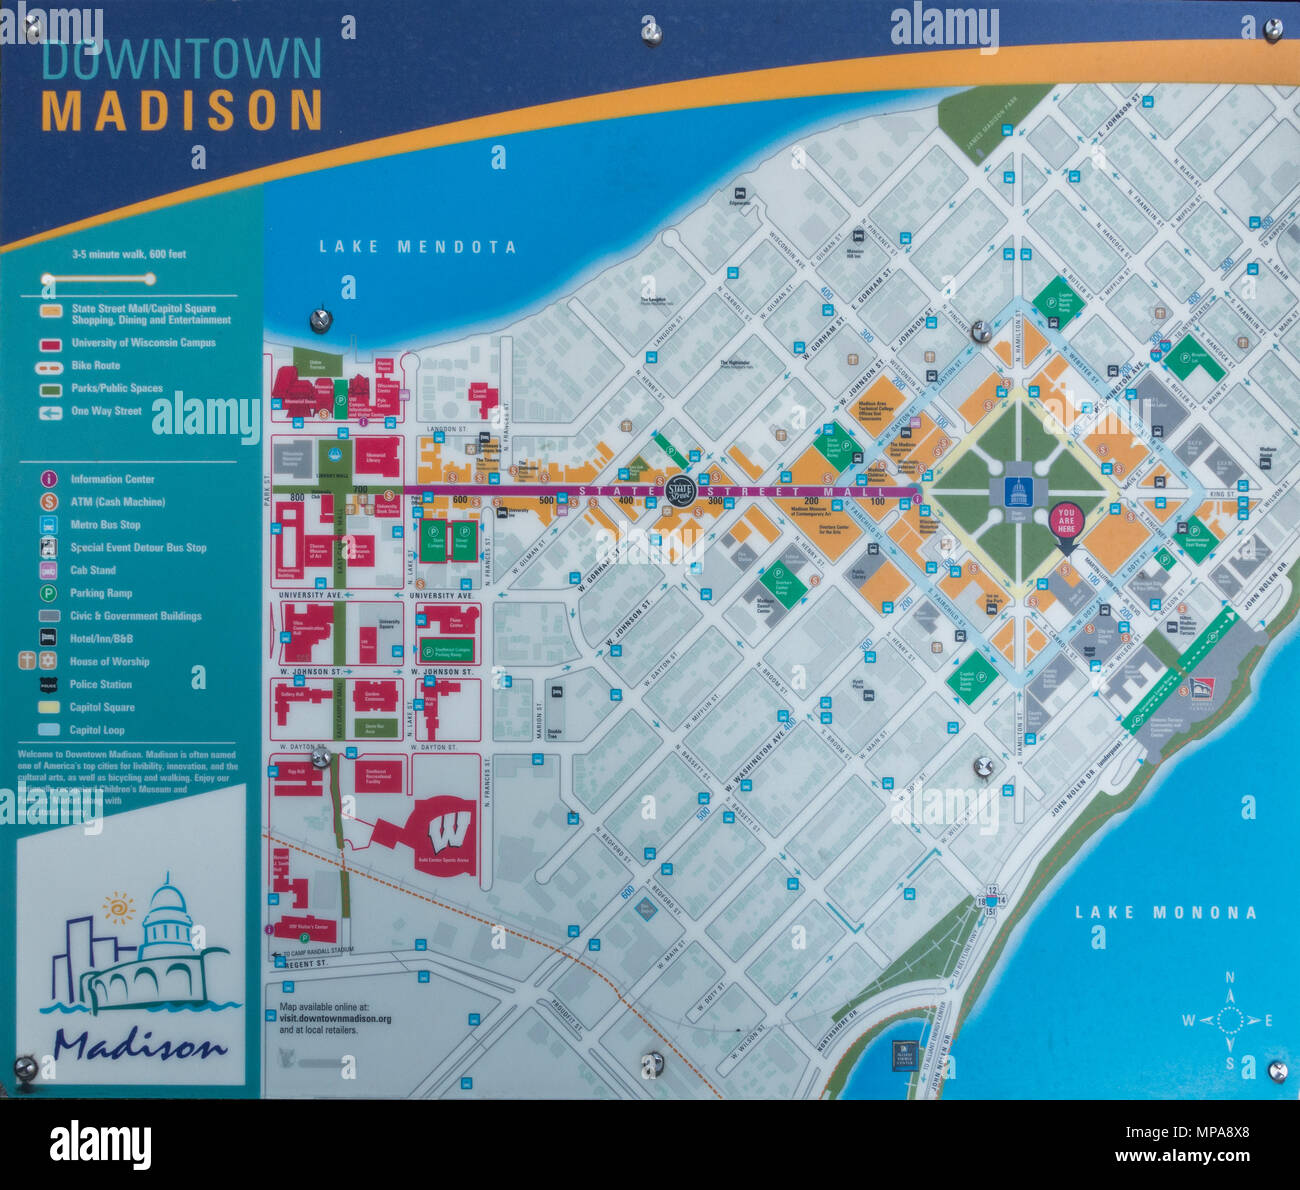 downtown Madison Wisconsin map Stock Photo: 185852640 - Alamy